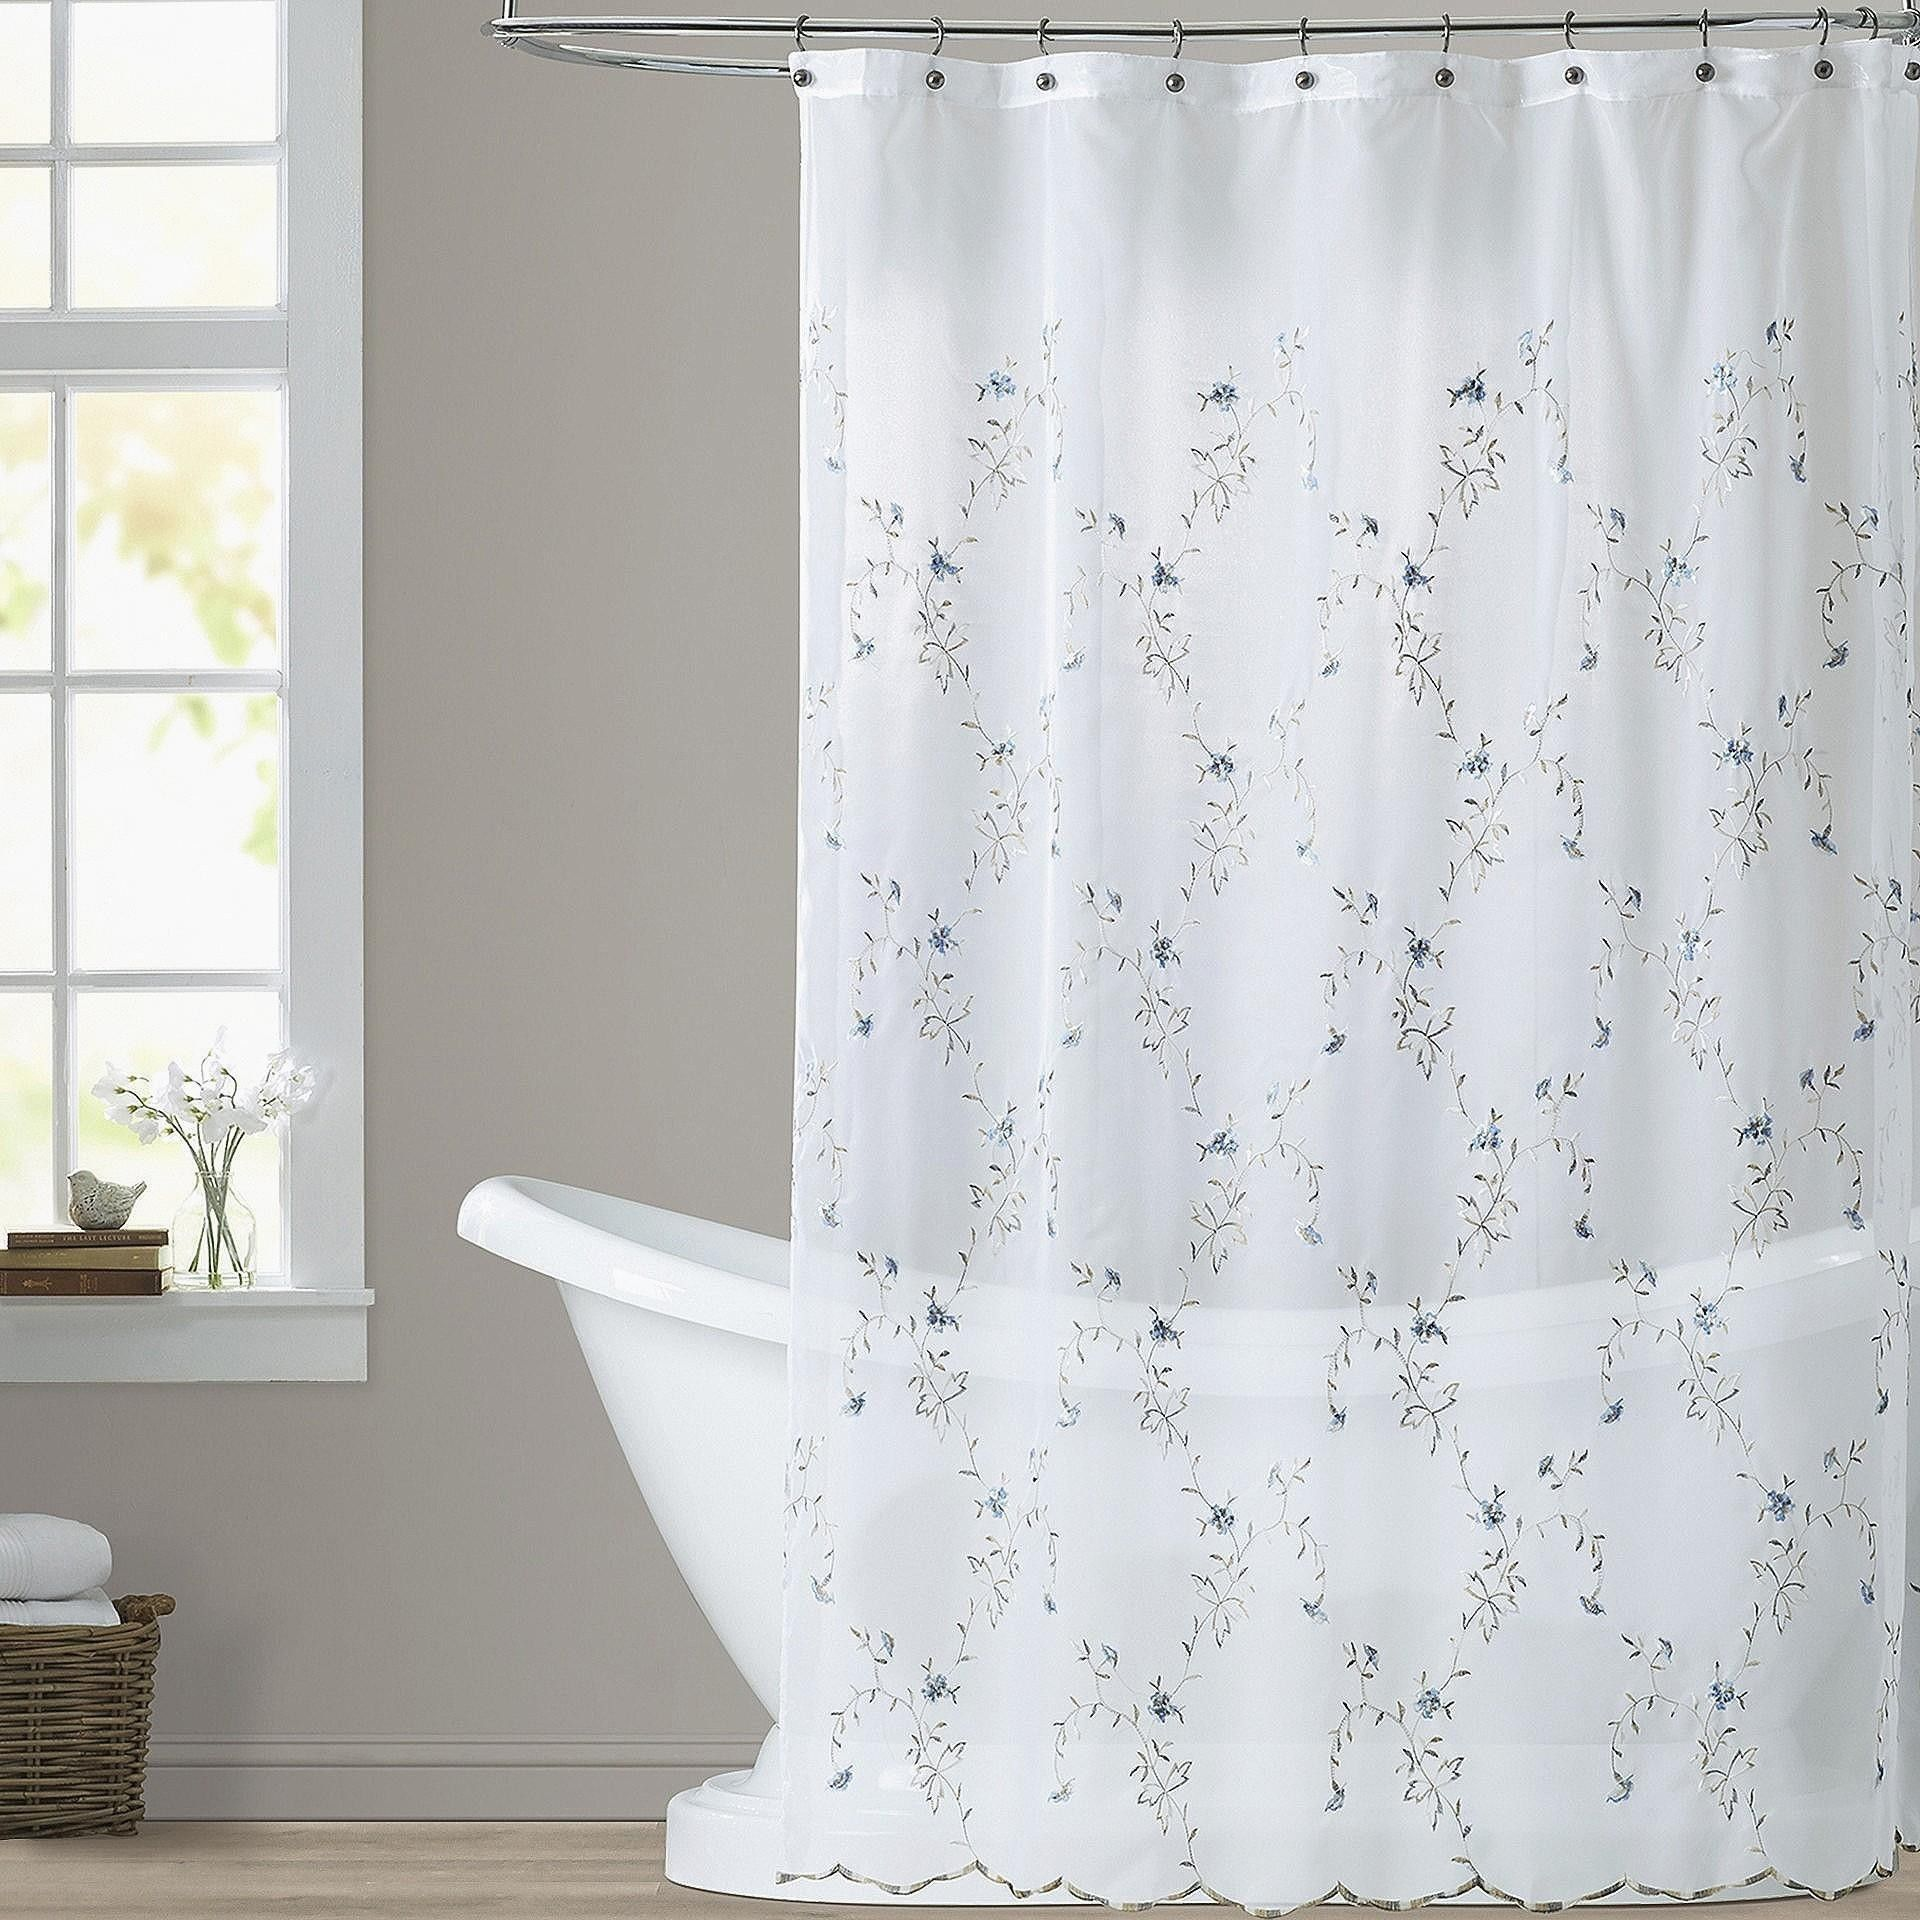 25 New Bathroom Shower Curtains And Matching Rugs